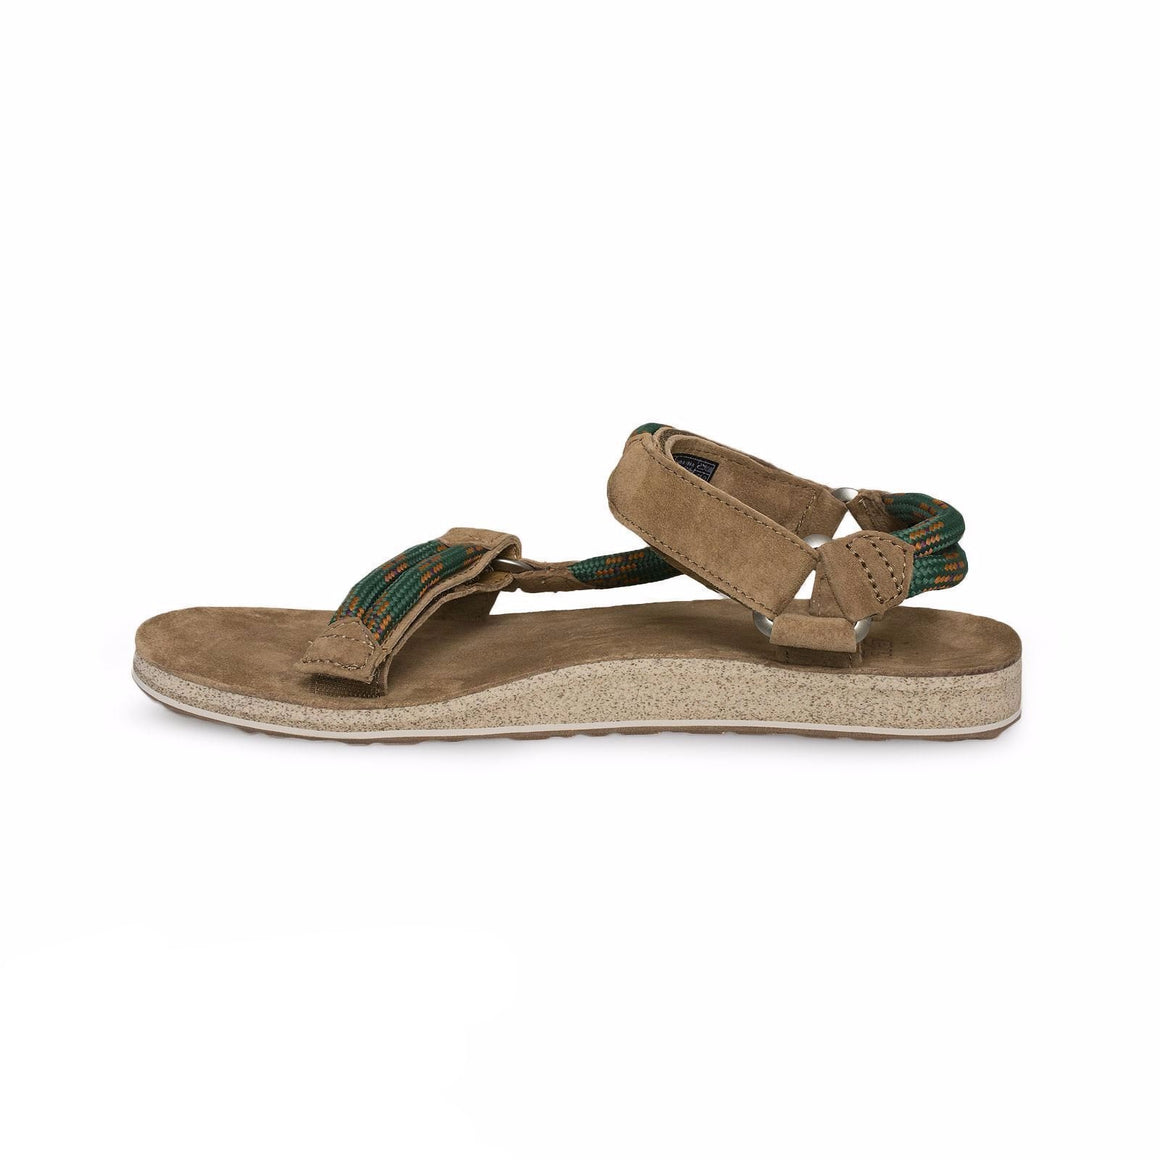 Teva Original Universal Rope Green Sandals